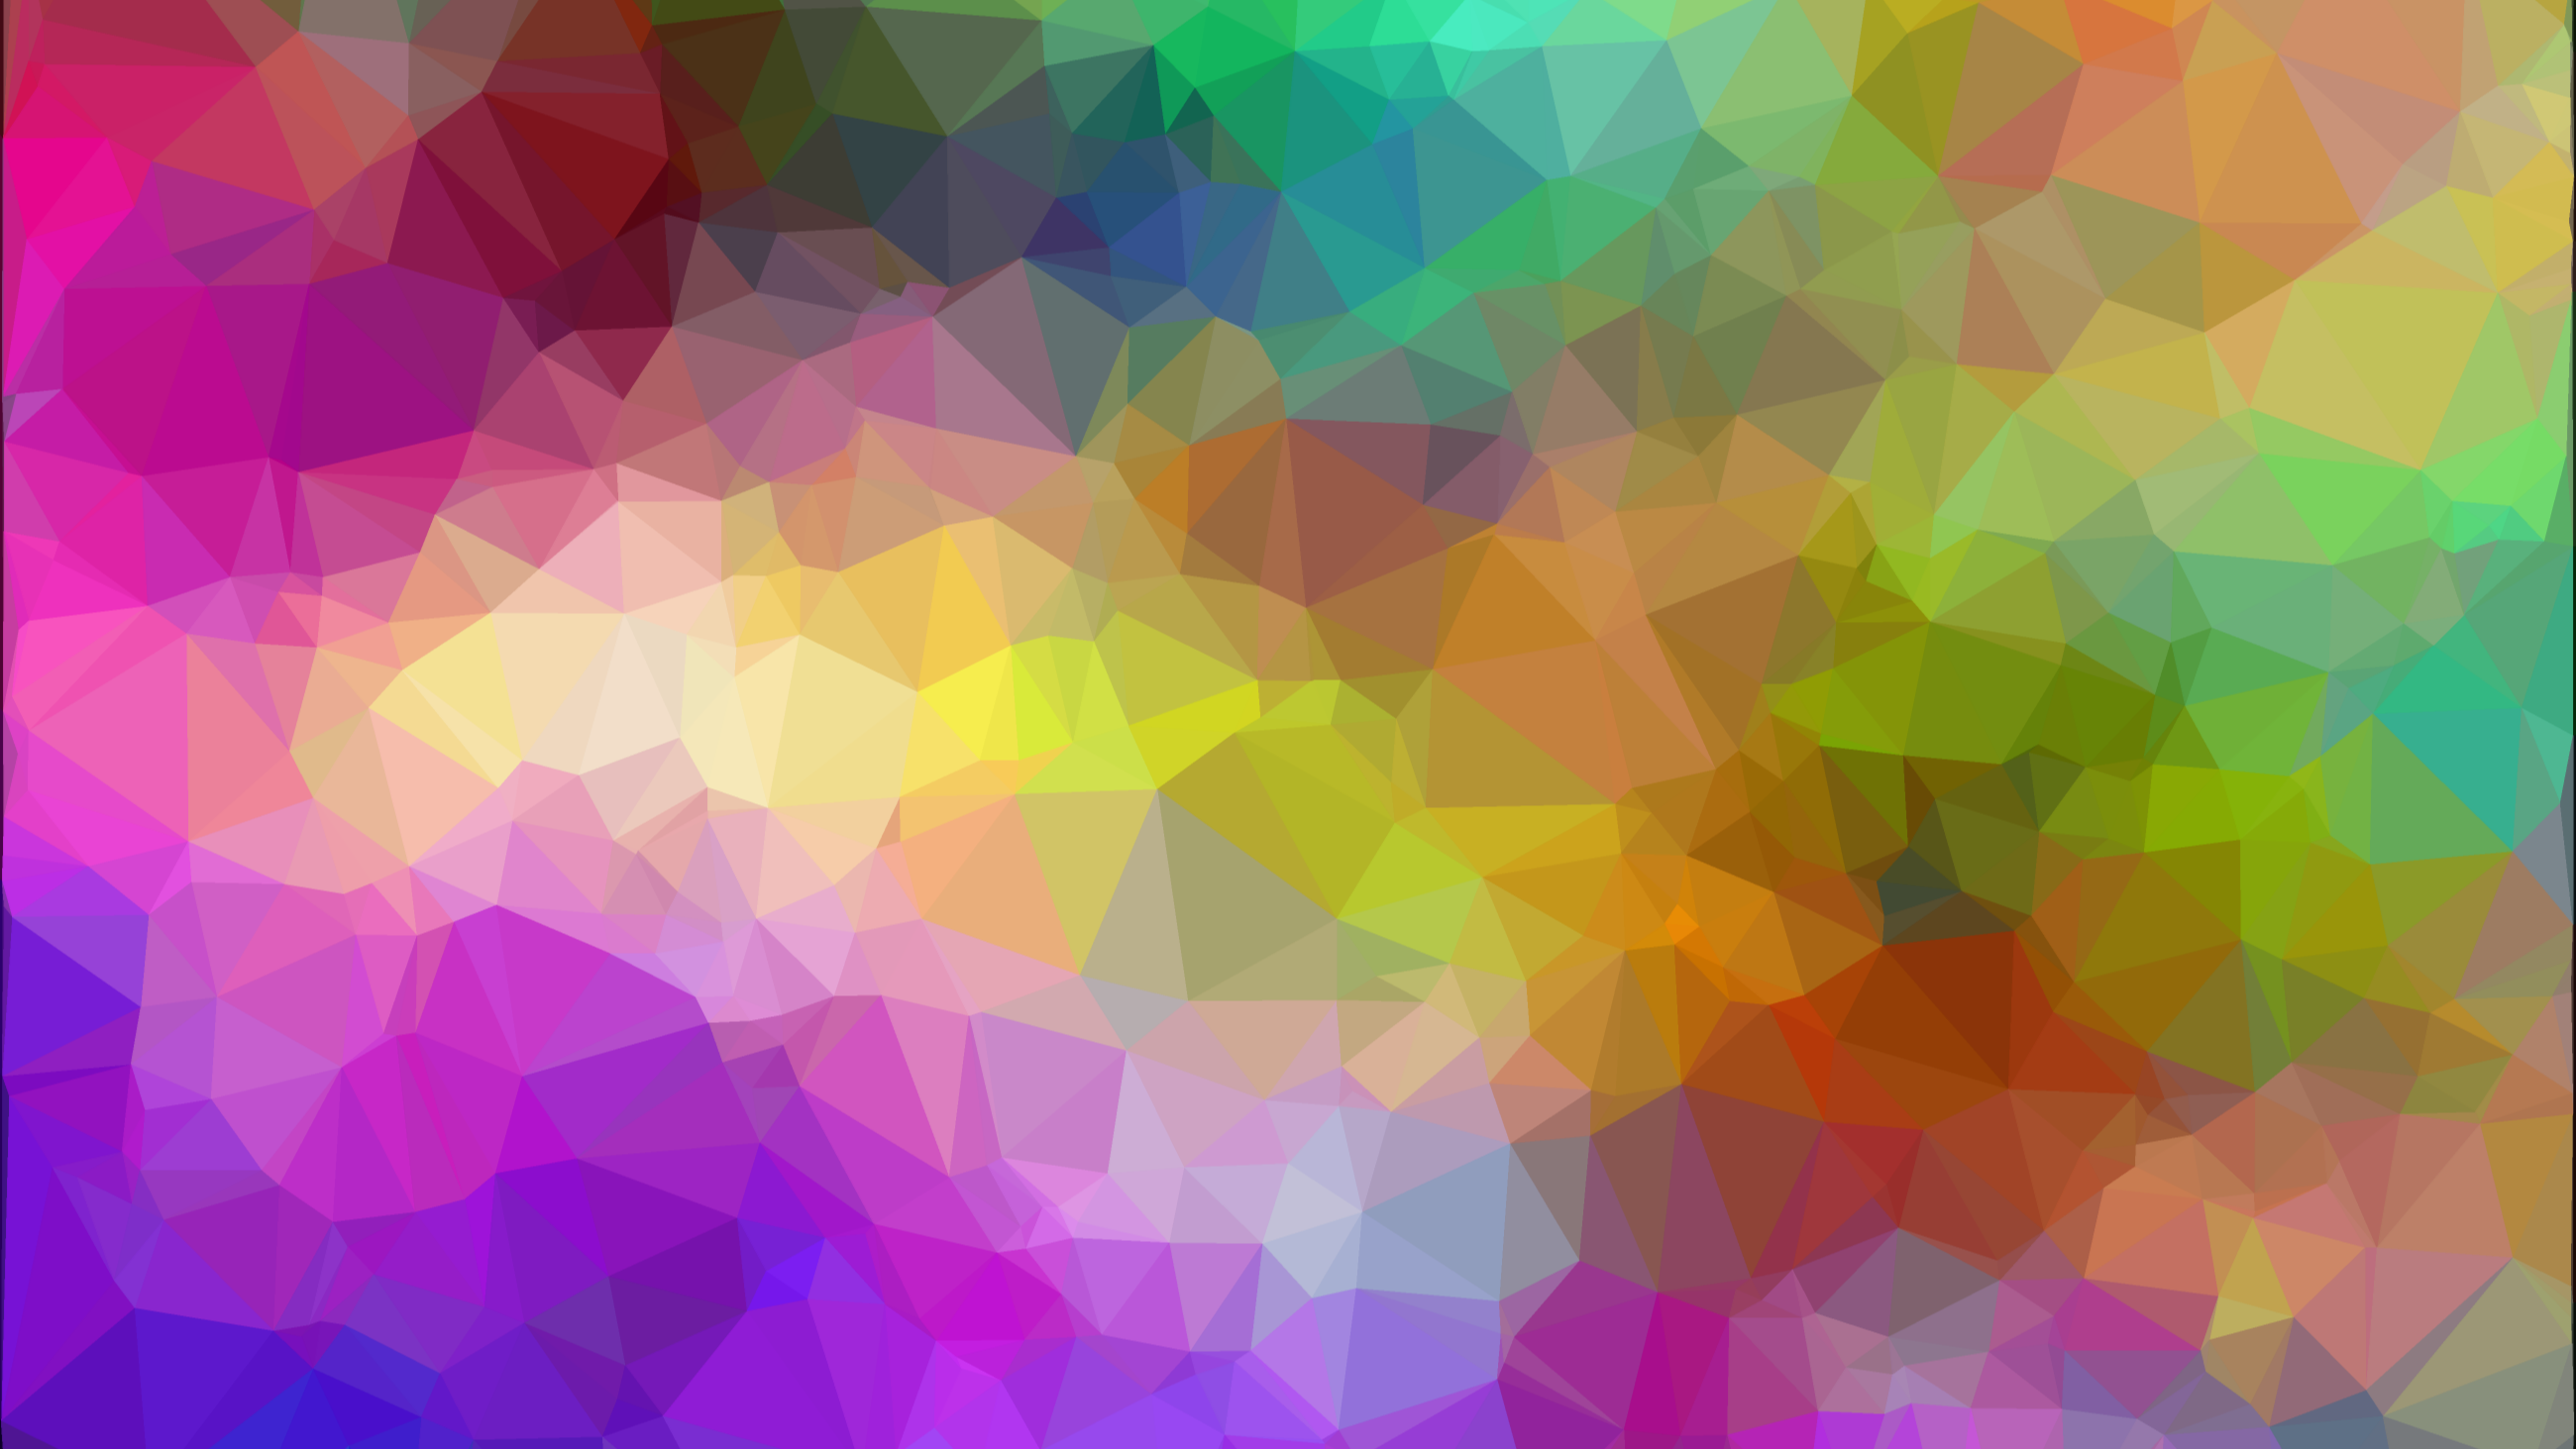 Wallpaper geometric color 8 2k uhd by airworldking on - Geometric wallpaper colorful ...